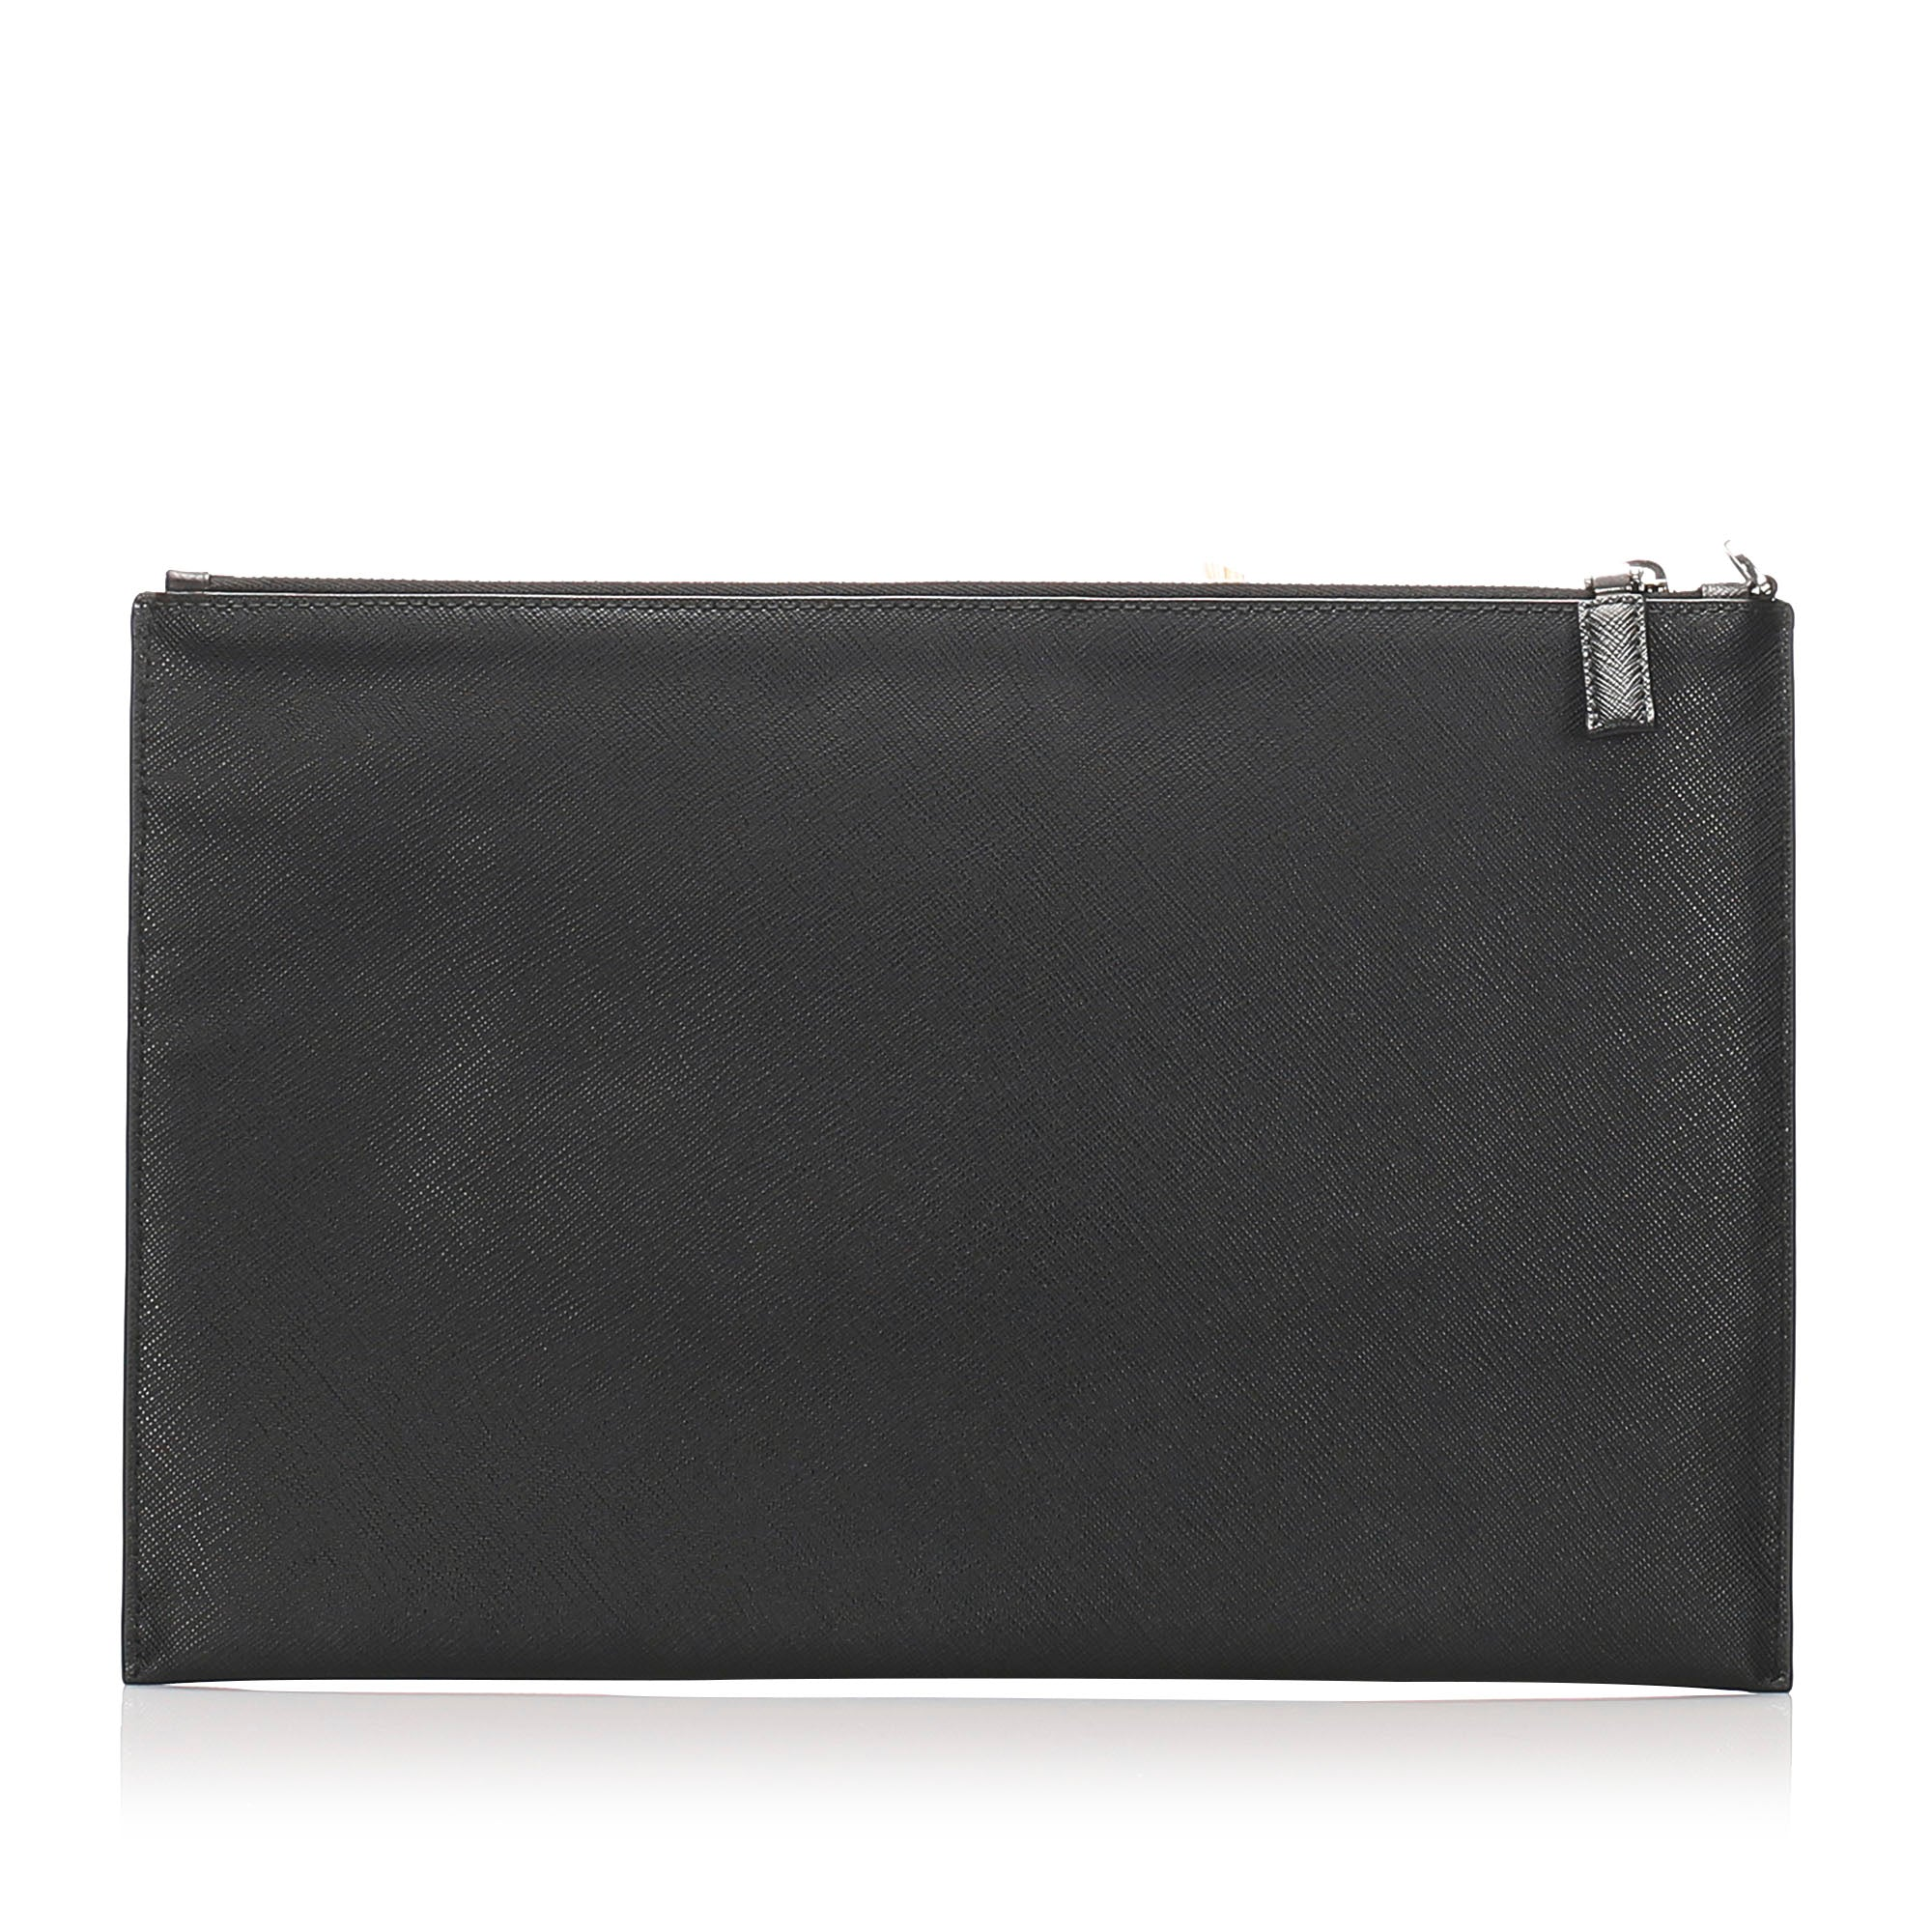 Prada Black Saffiano Clutch Bag